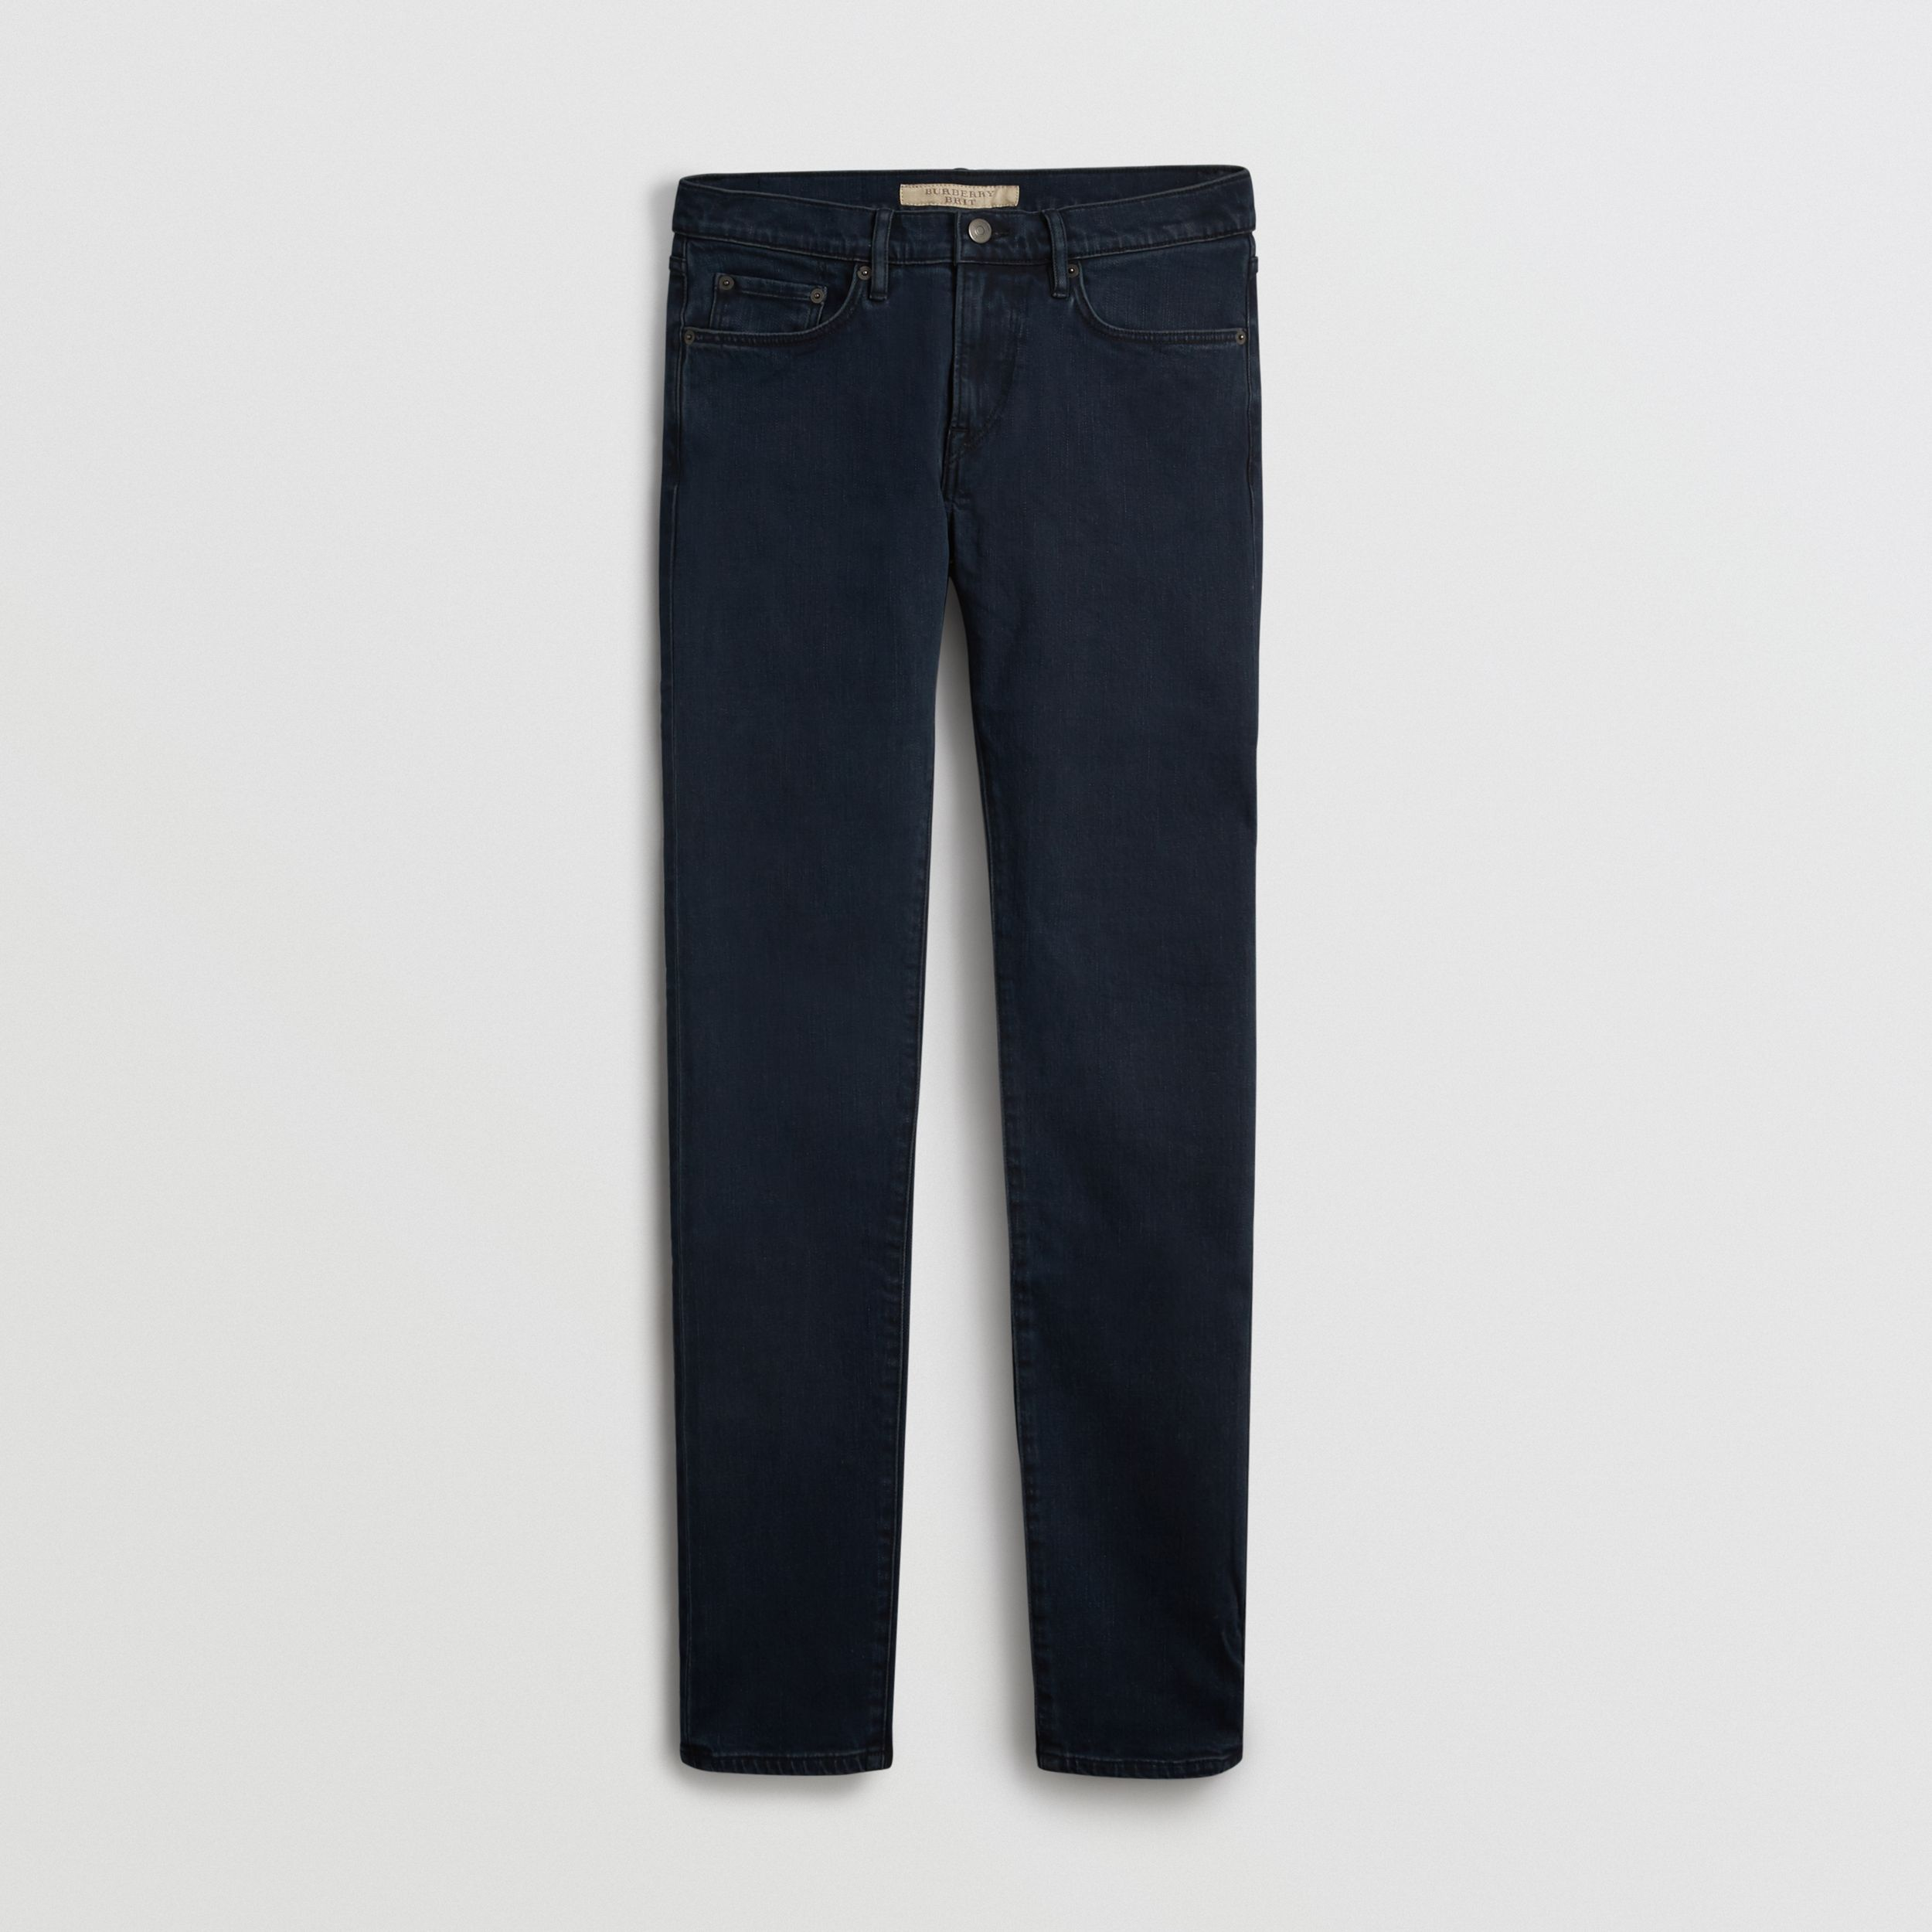 Slim Fit Stretch Denim Jeans in Dark Indigo - Men | Burberry - 4